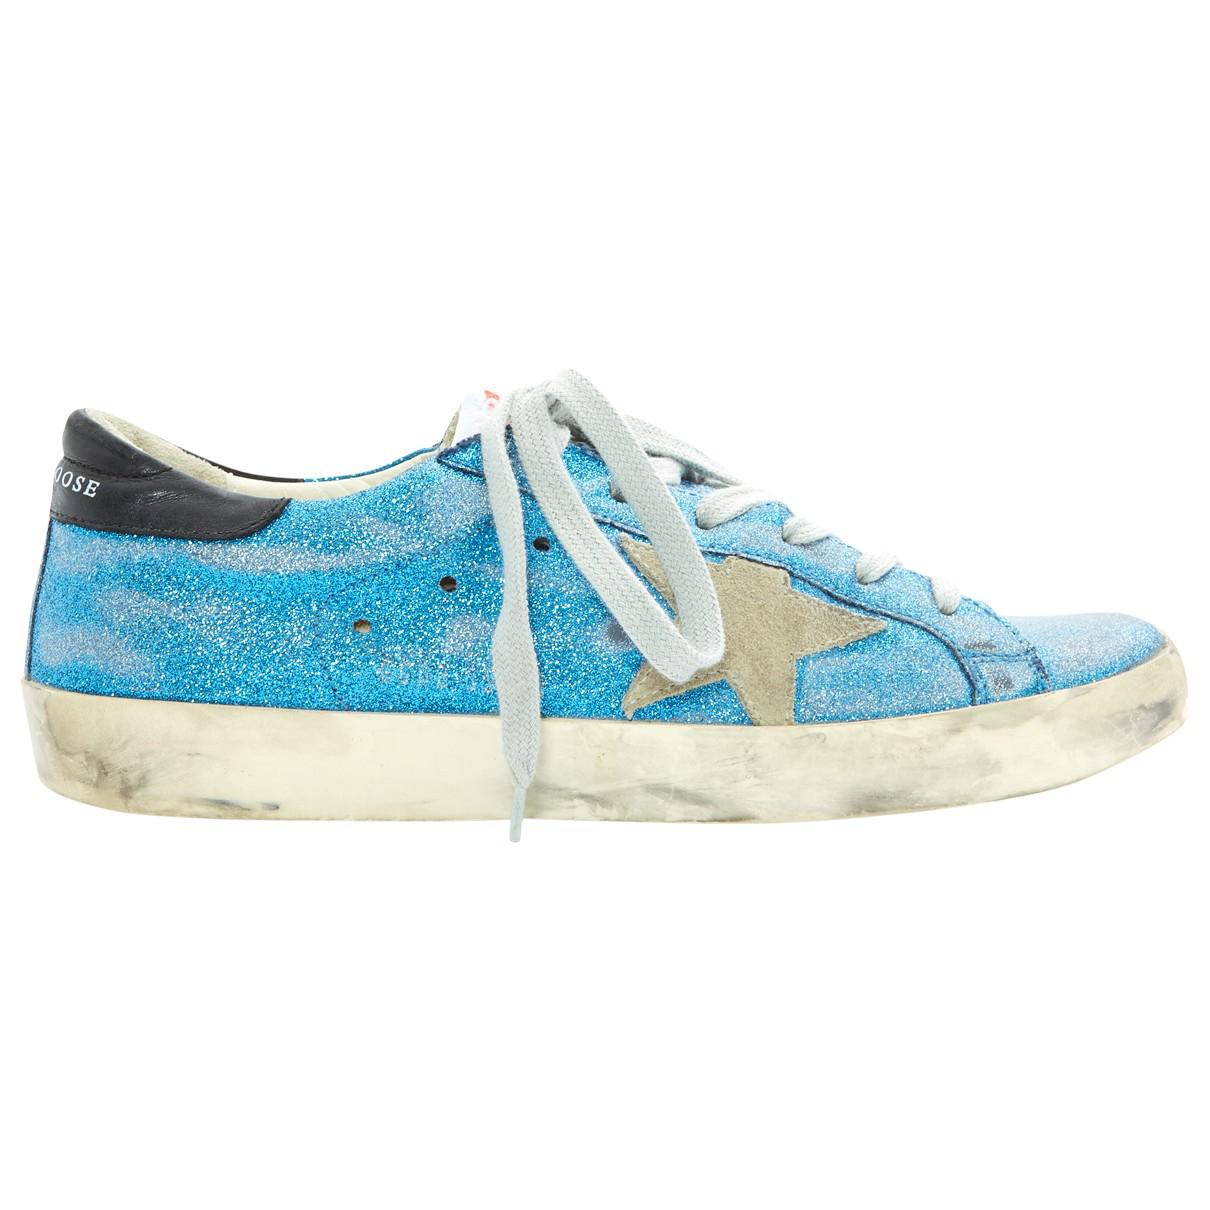 Discount For Nice Outlet Big Sale Pre-owned - Trainers Golden Goose Cheap In China SmqKZPsSmG